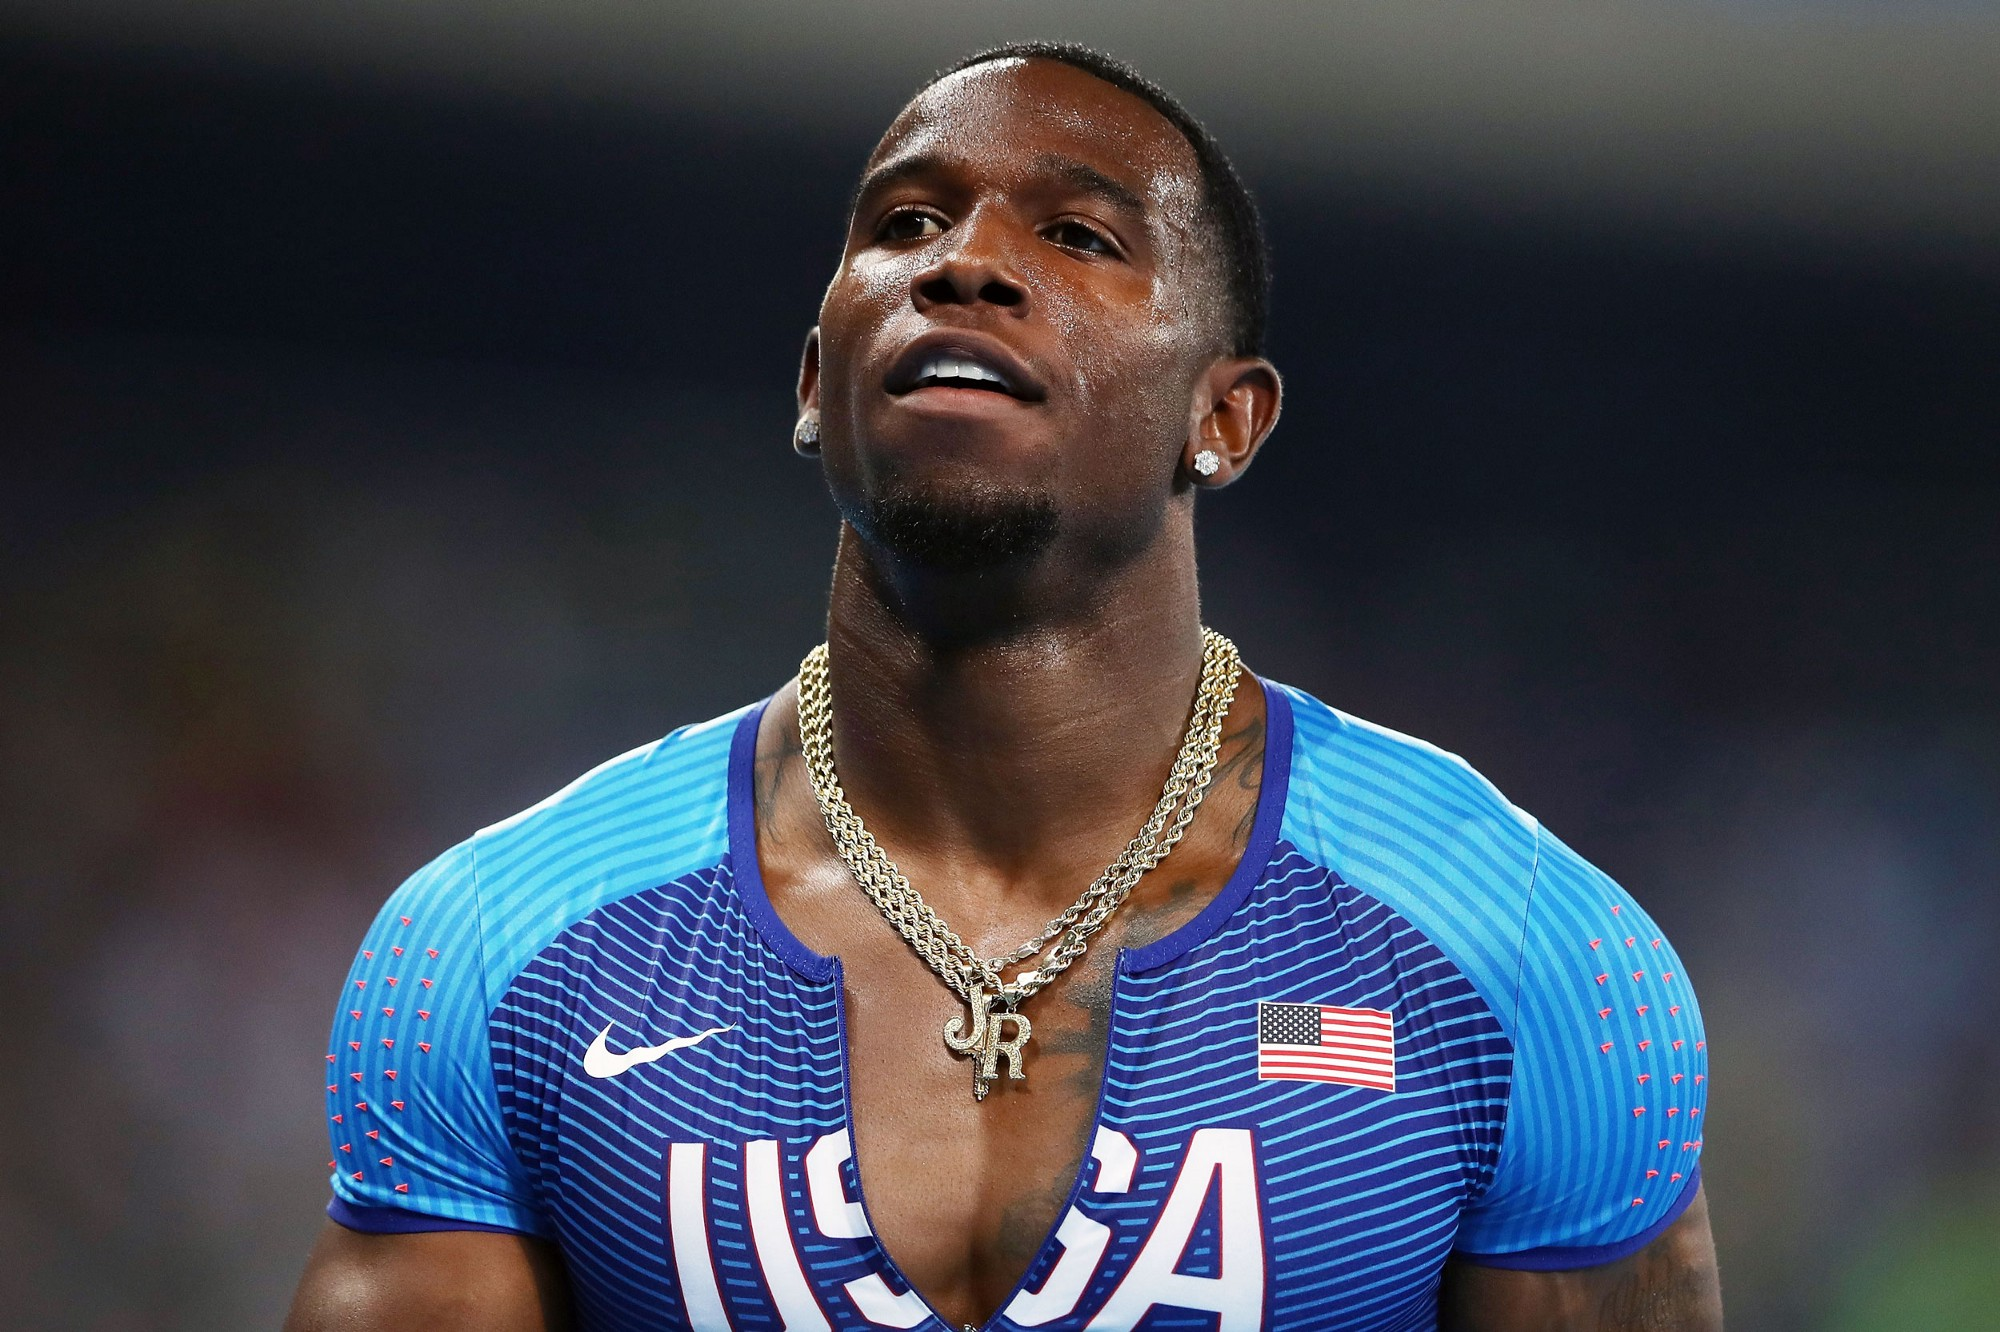 Olympic gold medalist ingested banned substance from kissing his girlfriend